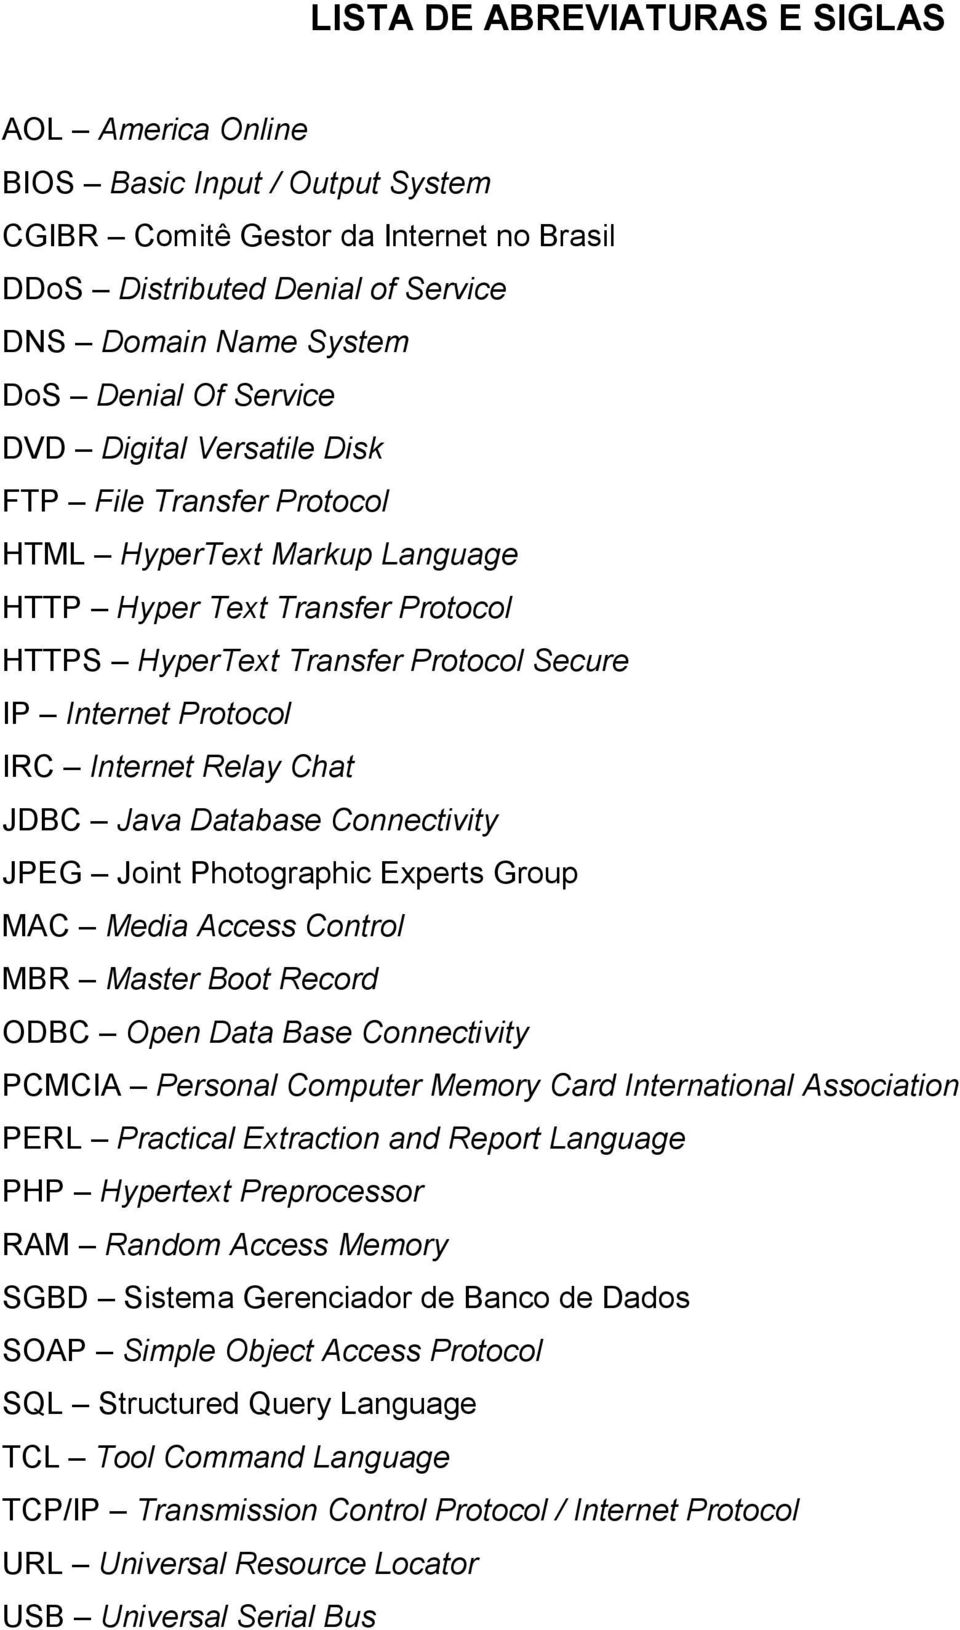 Internet Relay Chat JDBC Java Database Connectivity JPEG Joint Photographic Experts Group MAC Media Access Control MBR Master Boot Record ODBC Open Data Base Connectivity PCMCIA Personal Computer